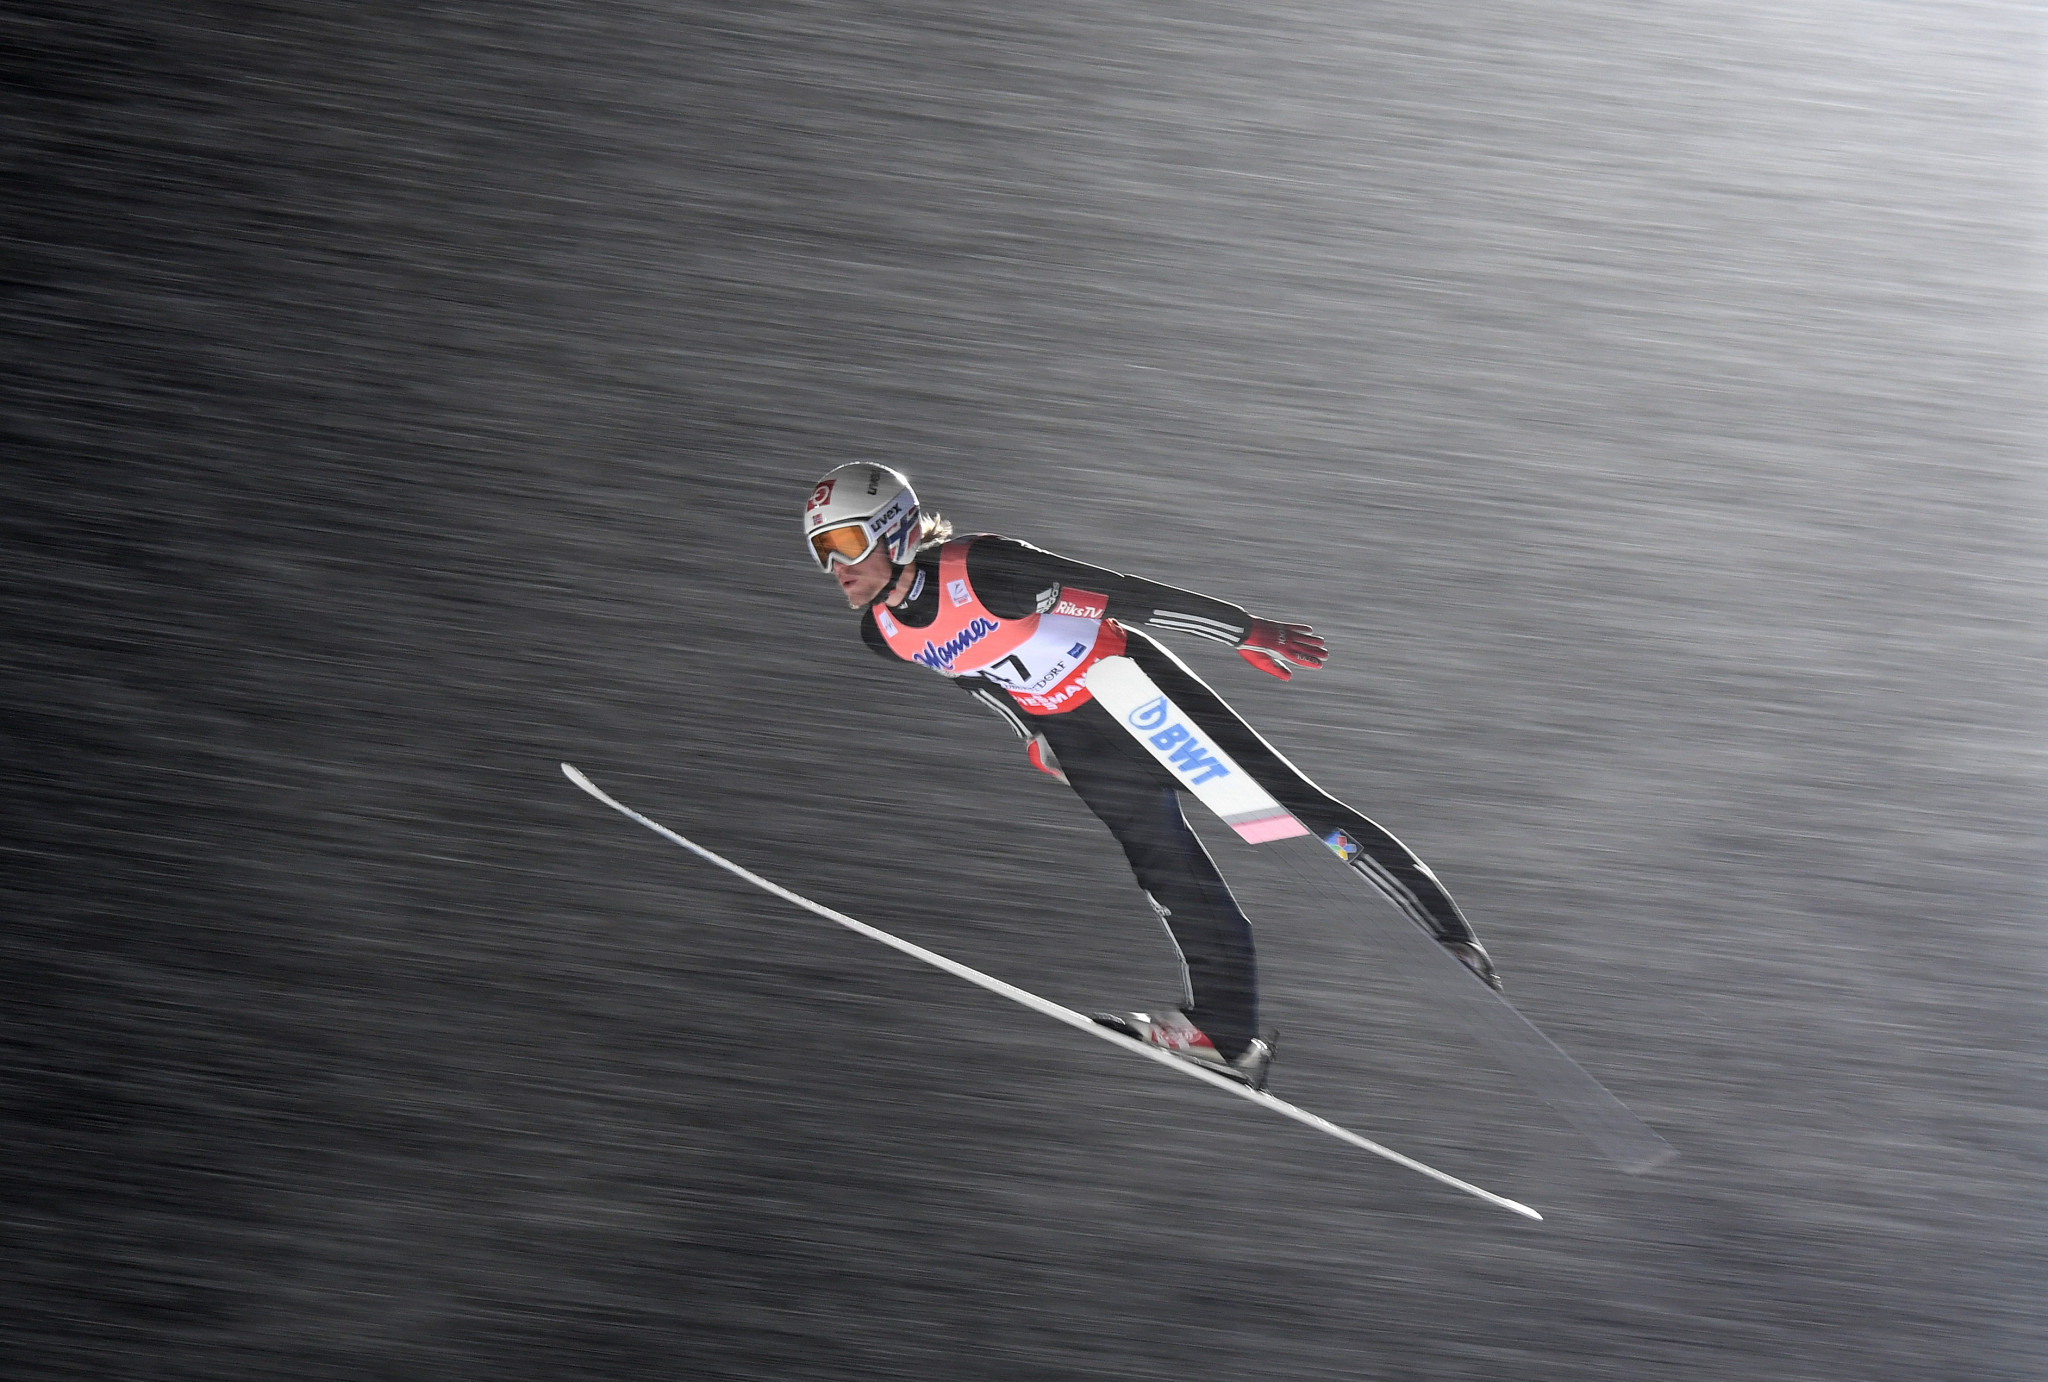 Tande leads at halfway stage of individual event at FIS Ski Flying World Championships